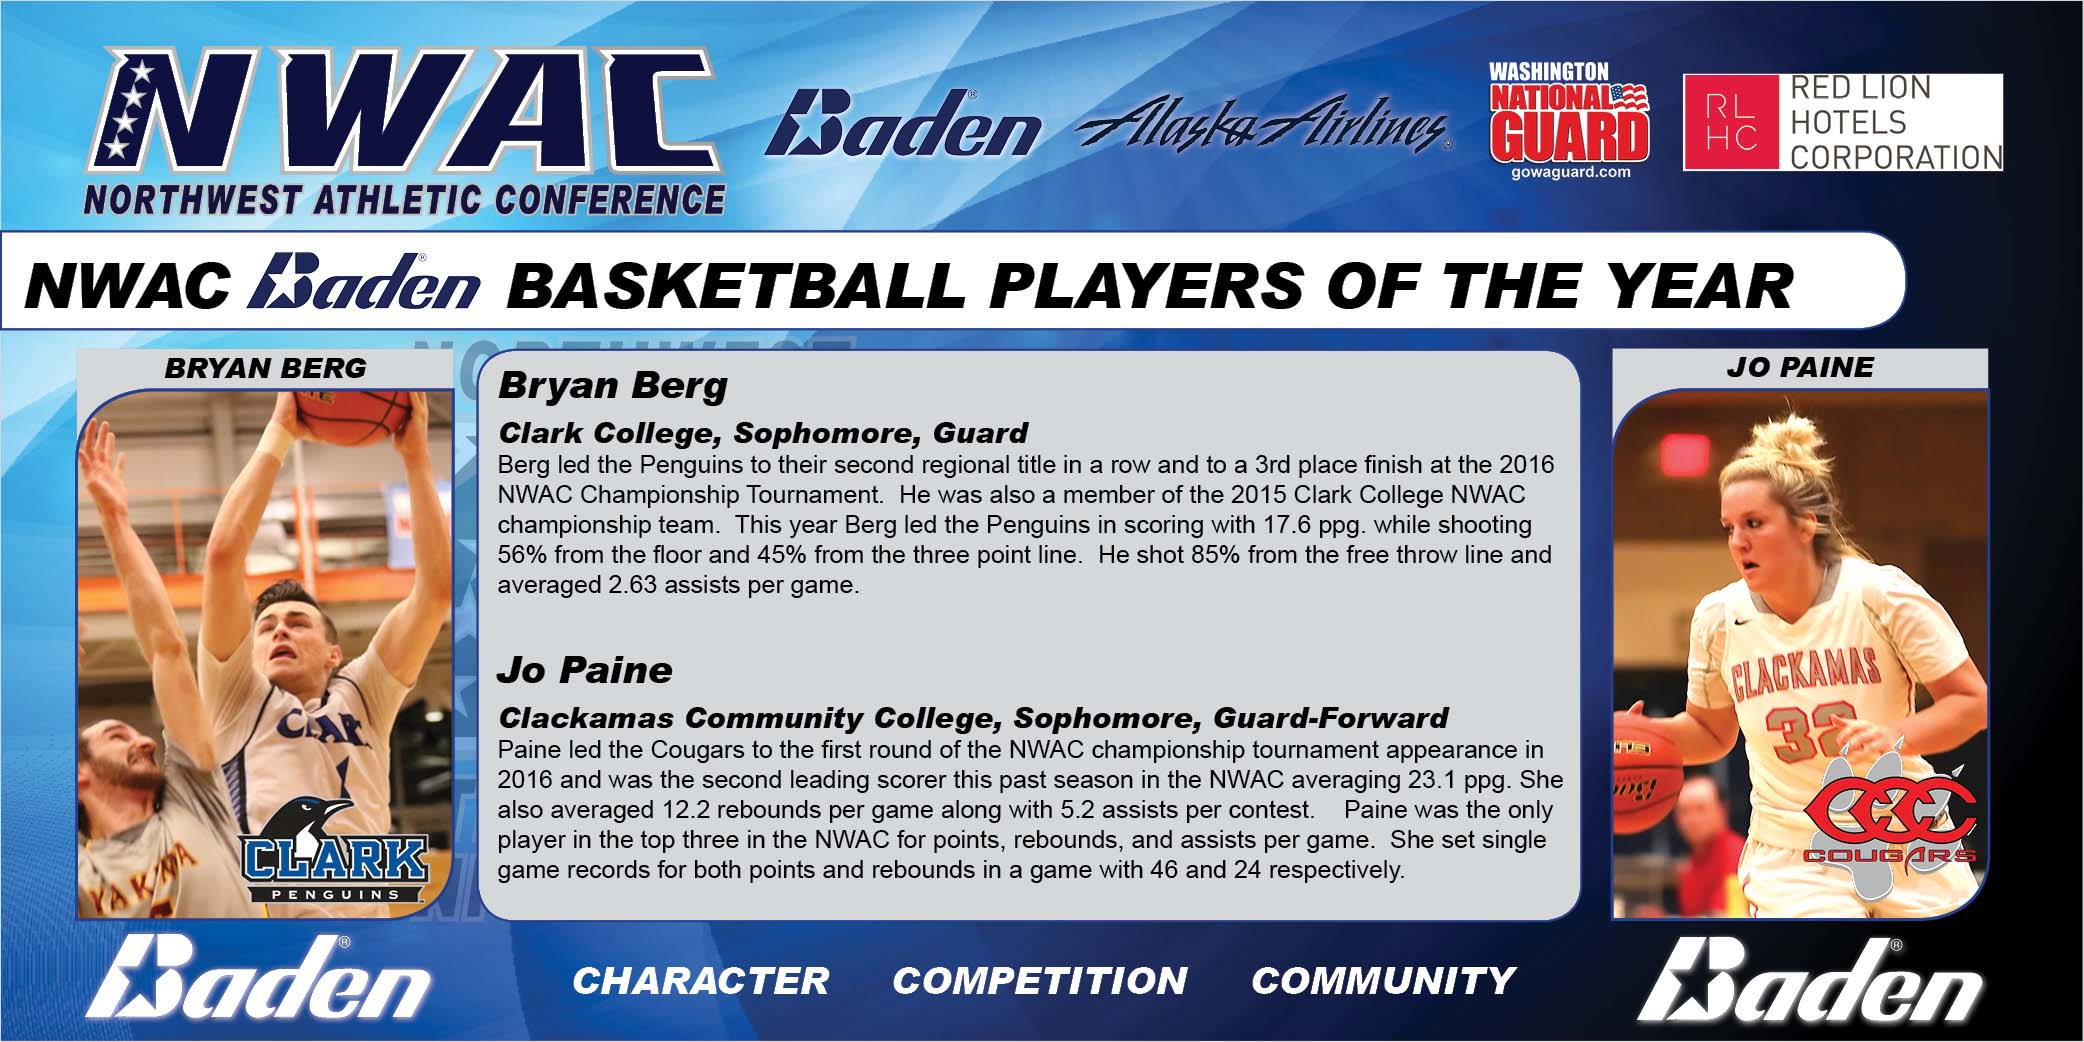 Images of the Baden NWAC Basketball Players of the Year